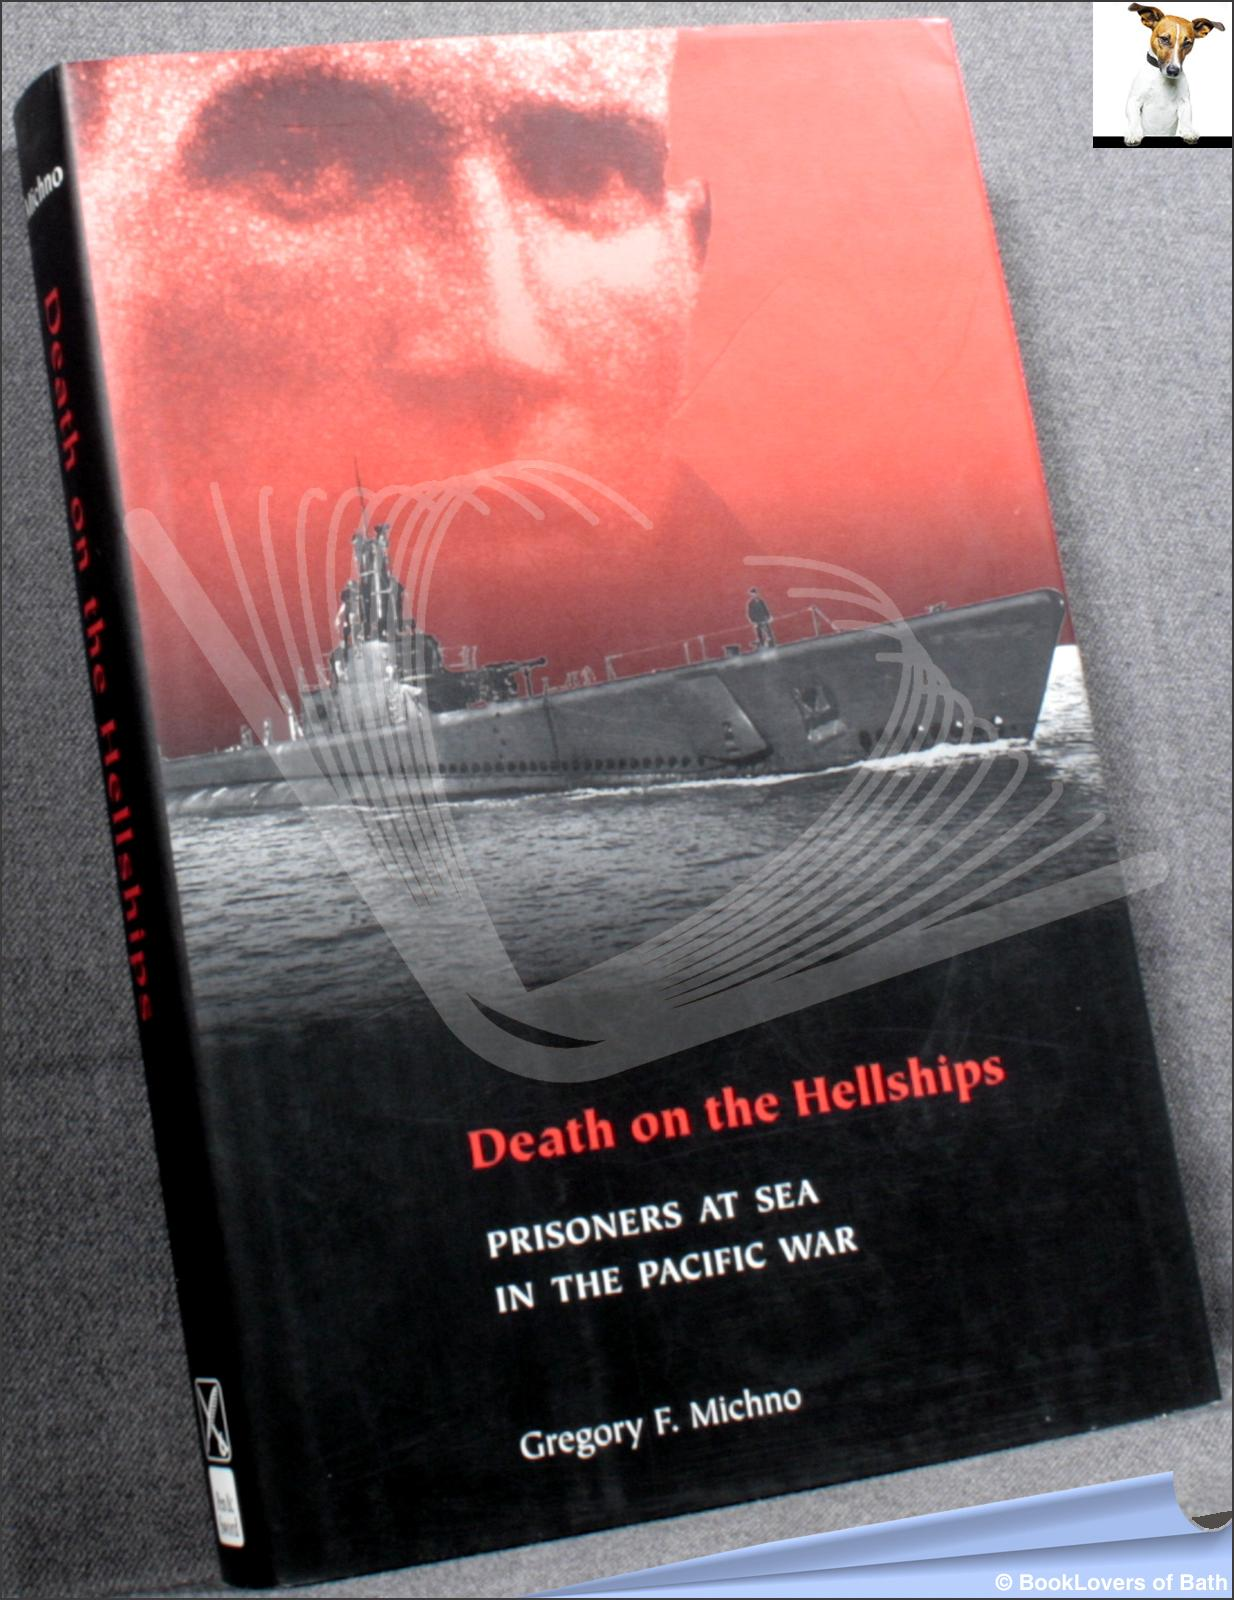 Death on Hell Ships: Prisoners at Sea in the Pacific War - Gregory F. Michno